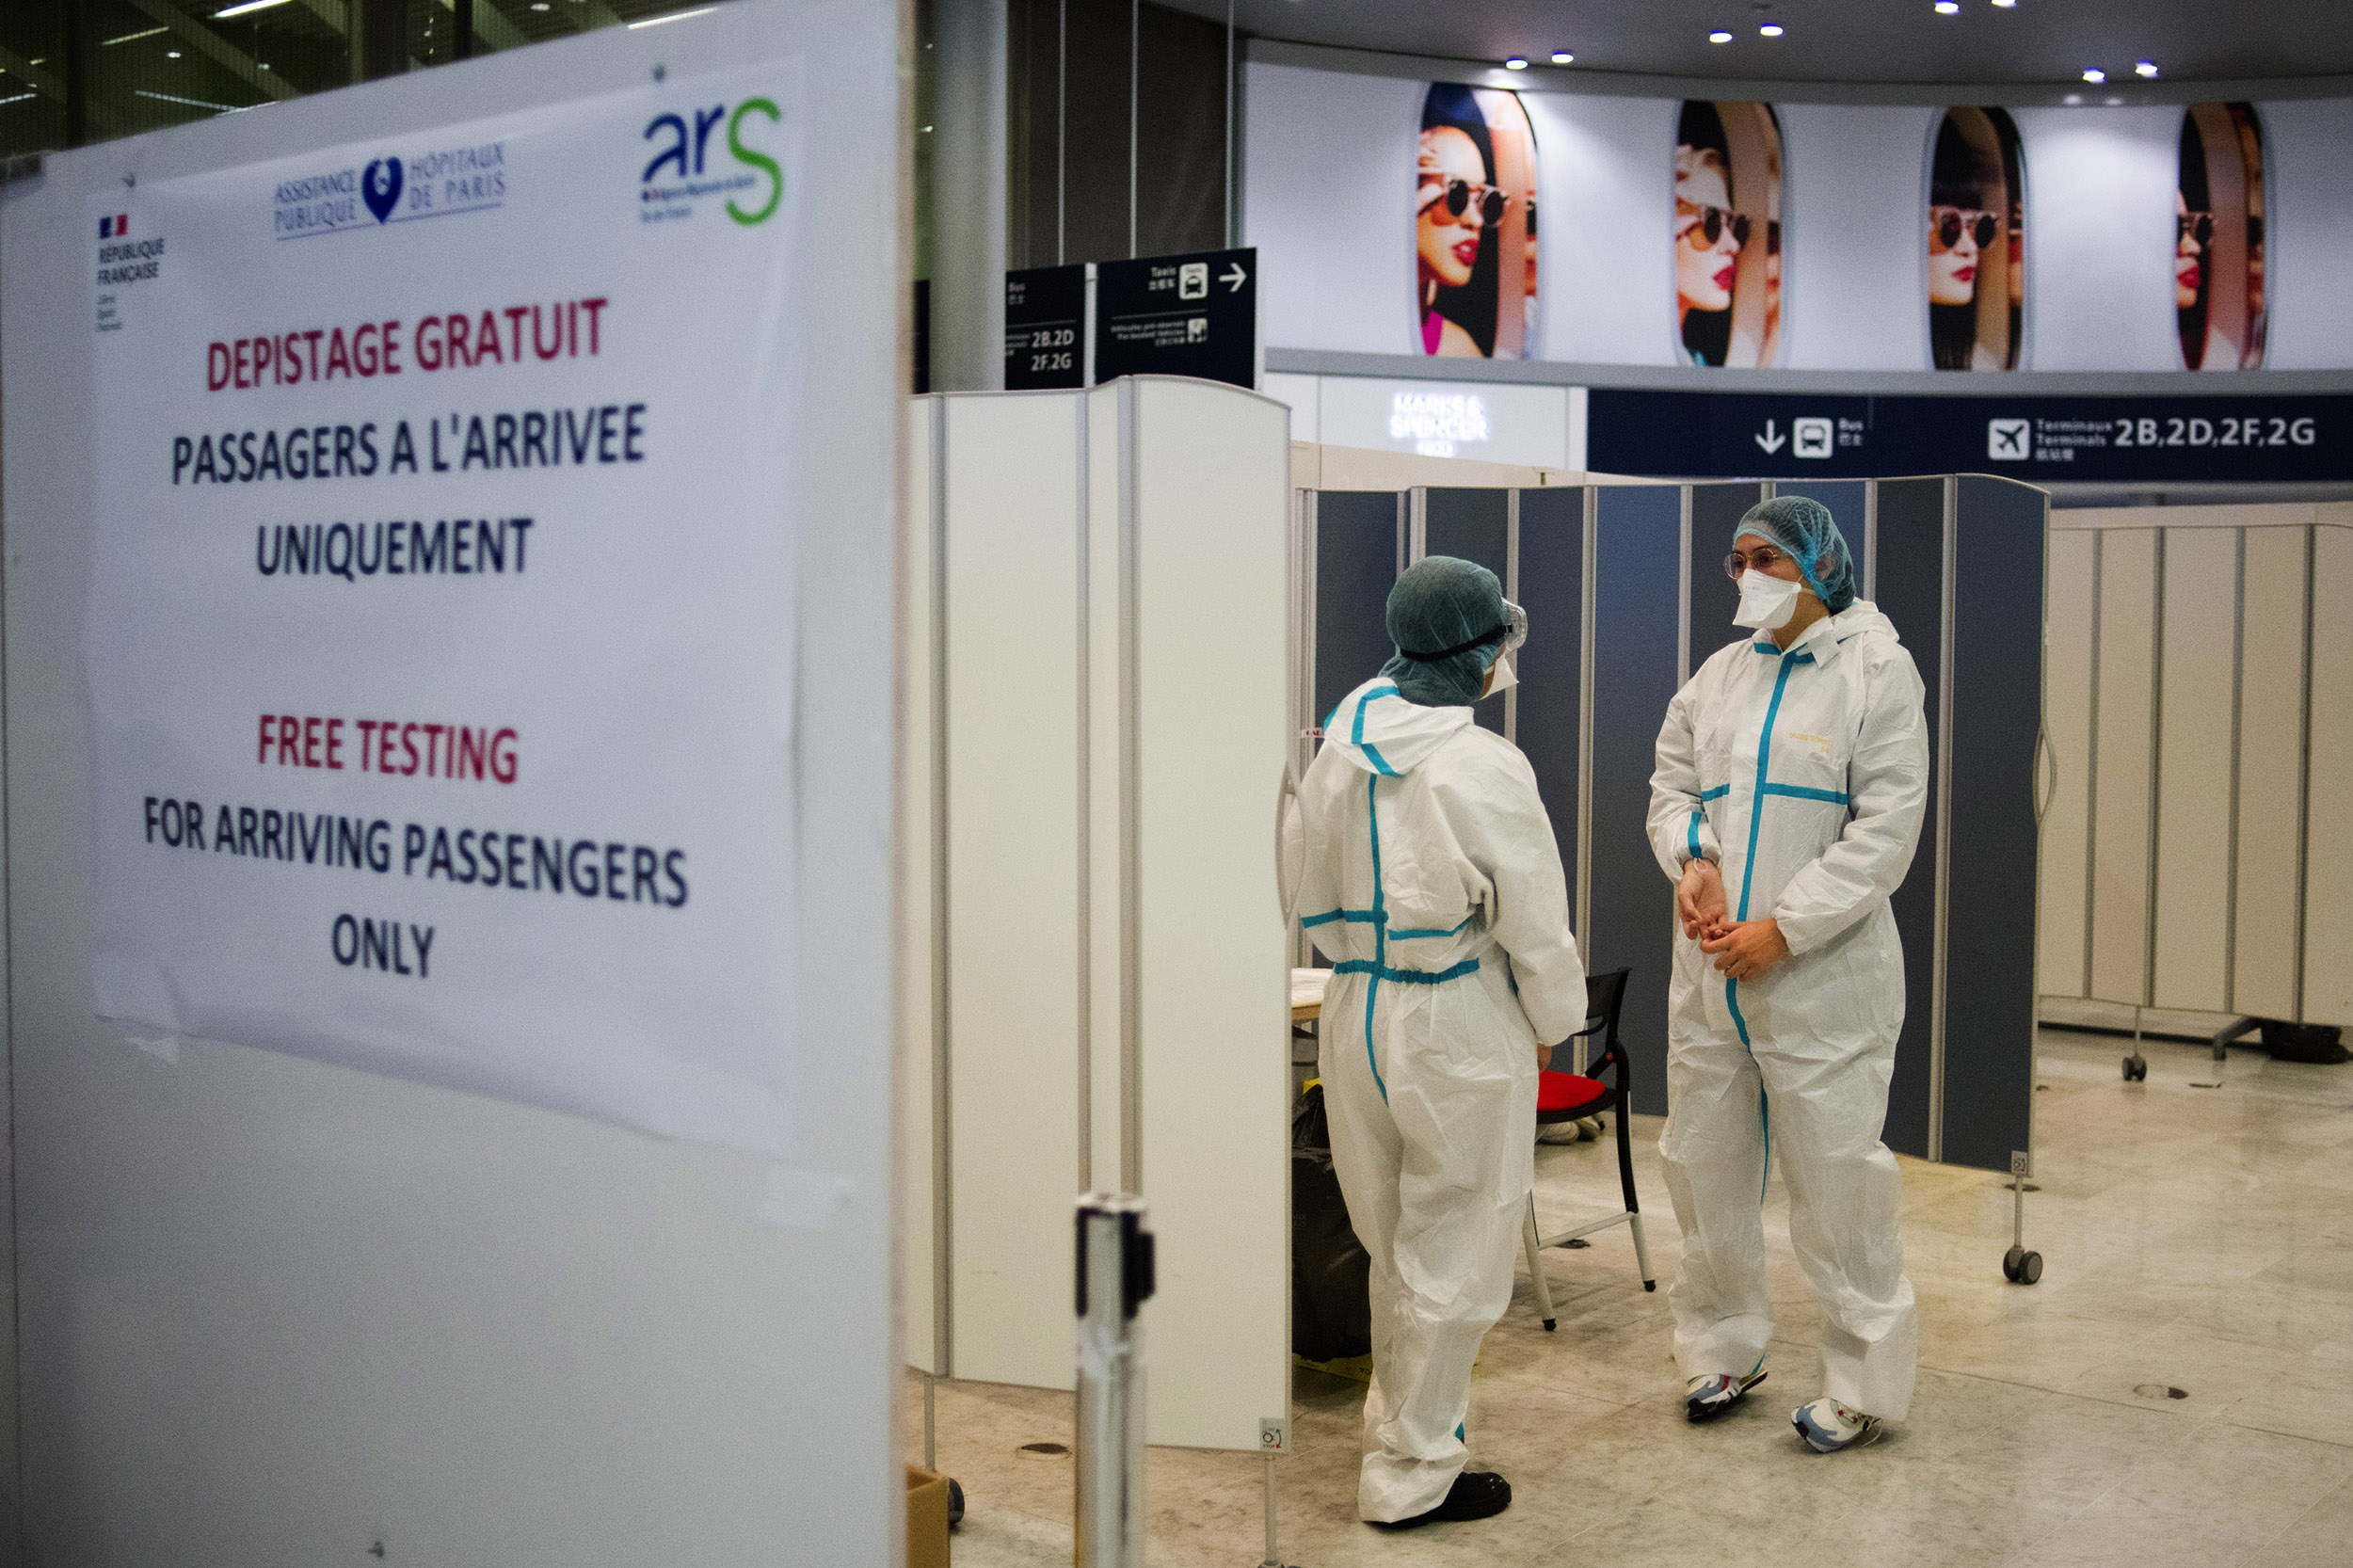 Health workers wait for travelers at the Covid-19 tests center at Charles de Gaulle airport in Roissy, France, on Tuesday, October 6.